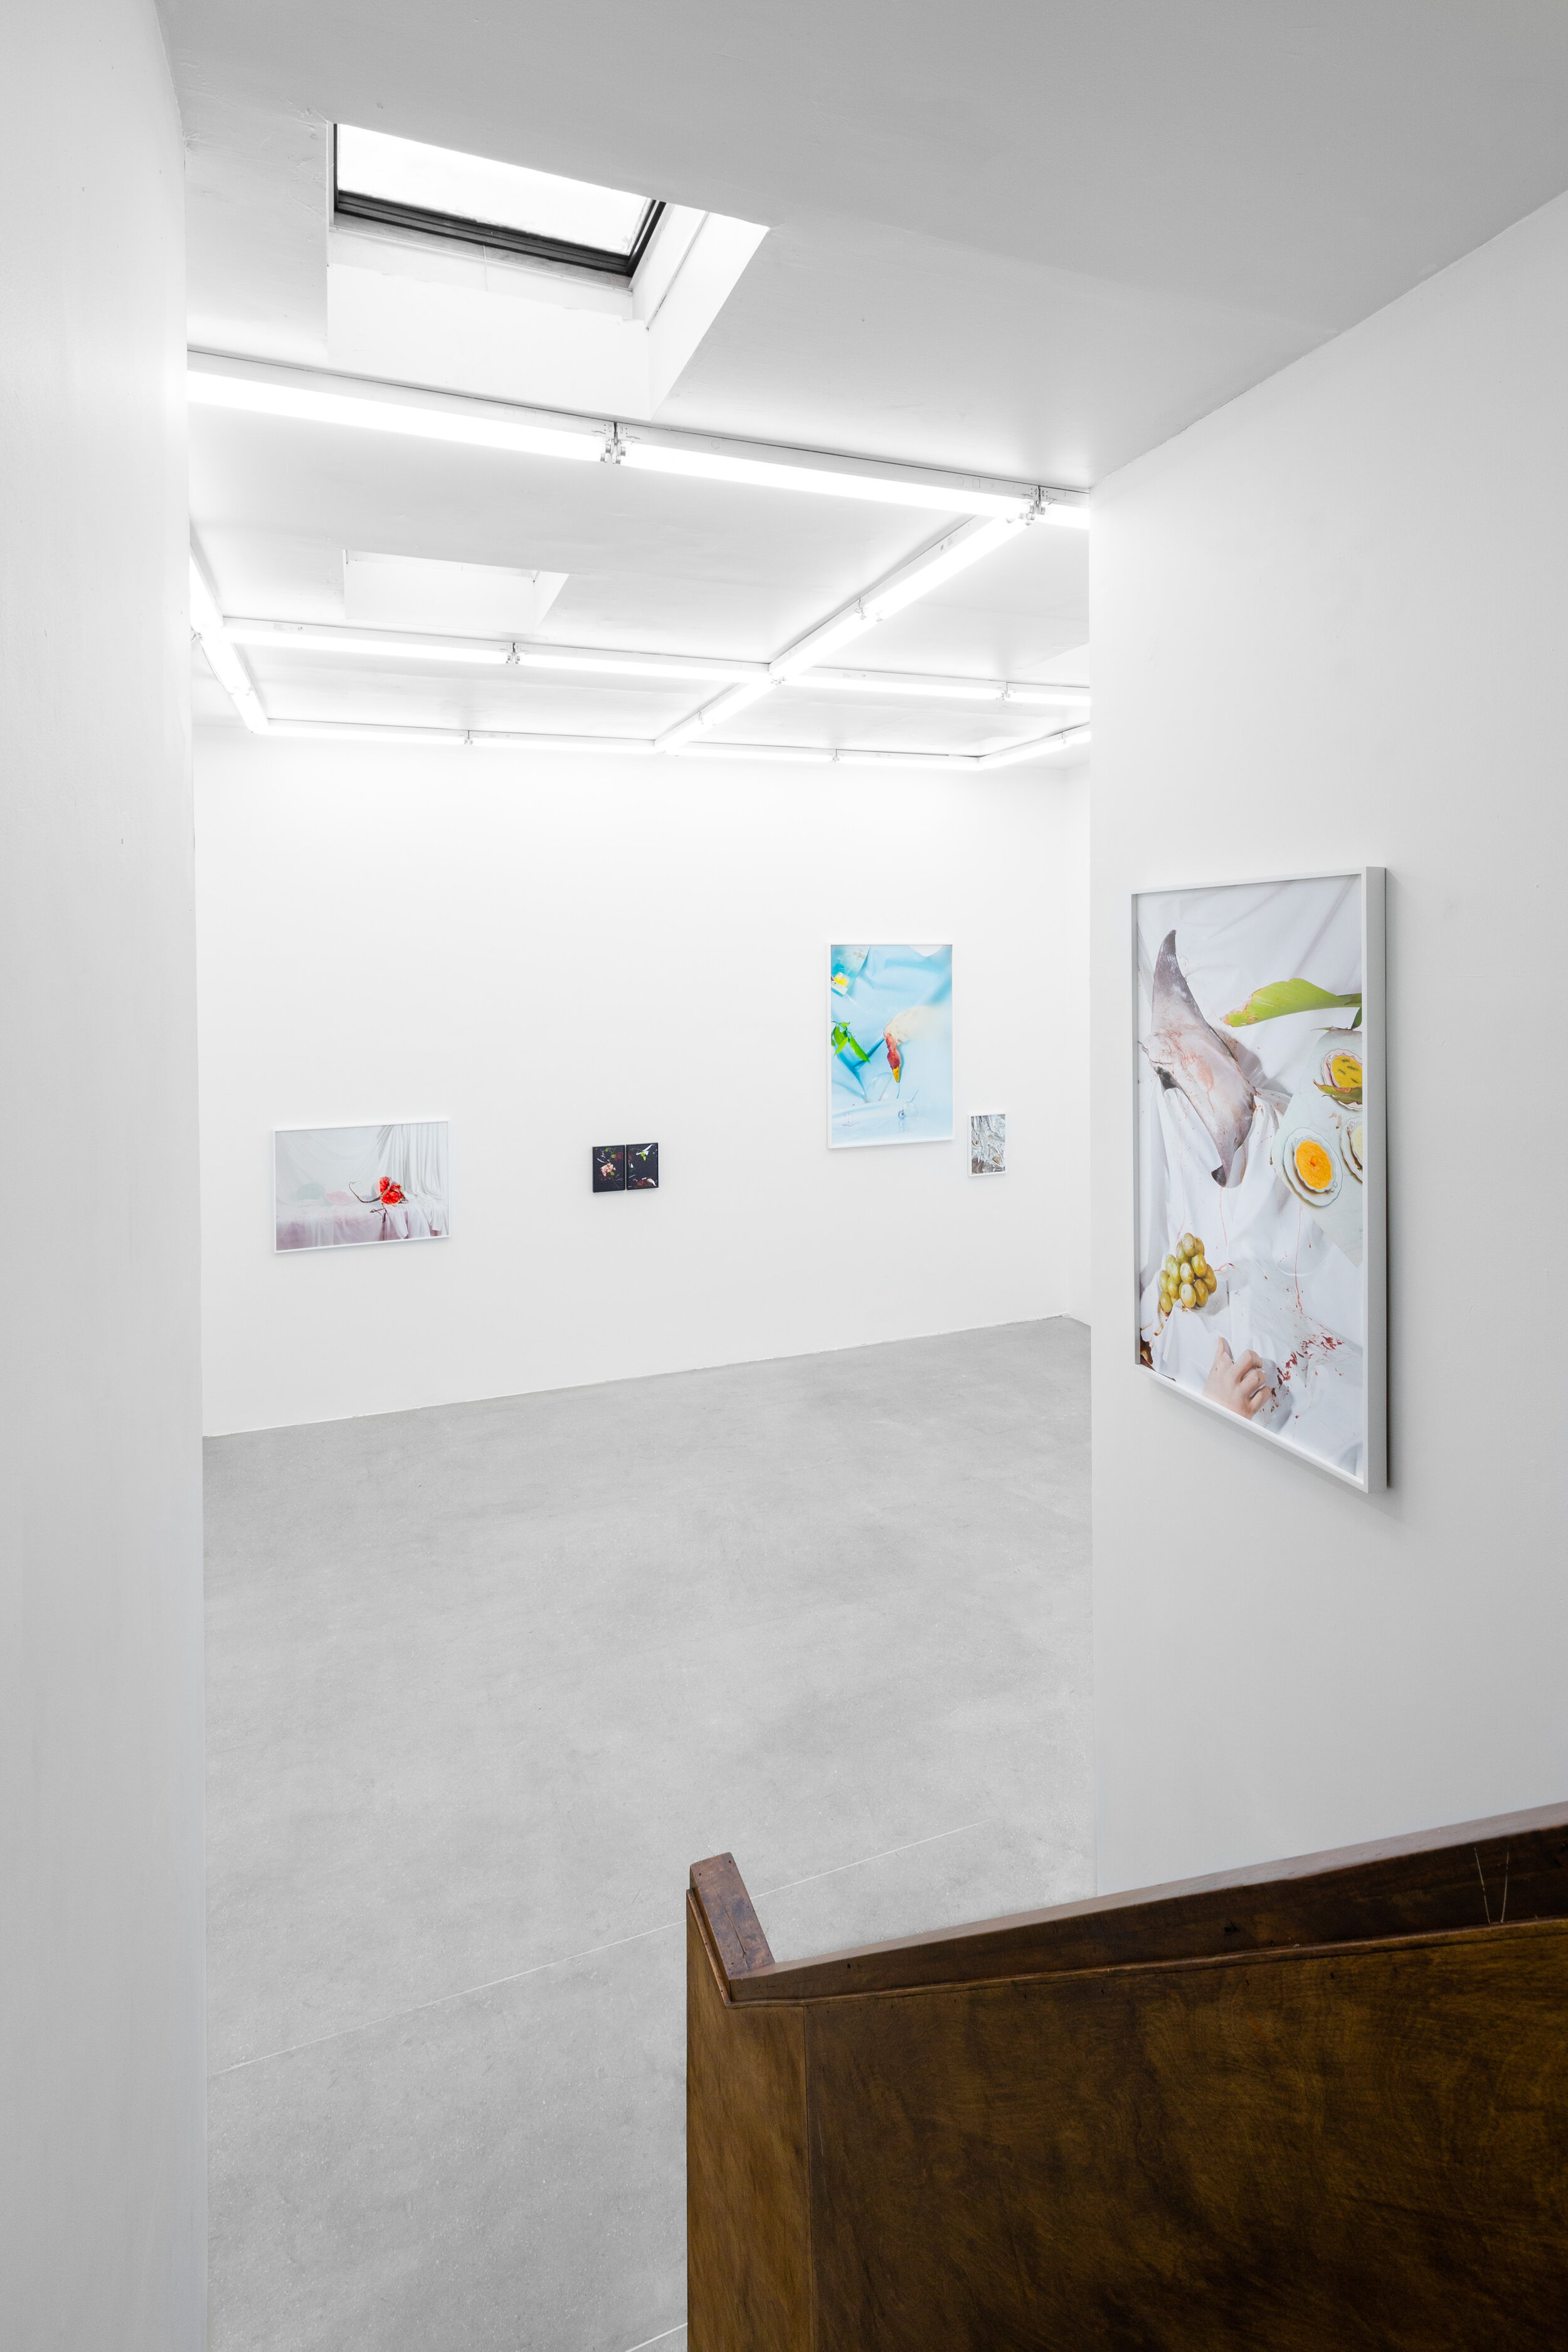 Installation View |  Offal  | Solo Exhibition by Arden Surdam | Image courtesy of Erik Bardin Photography